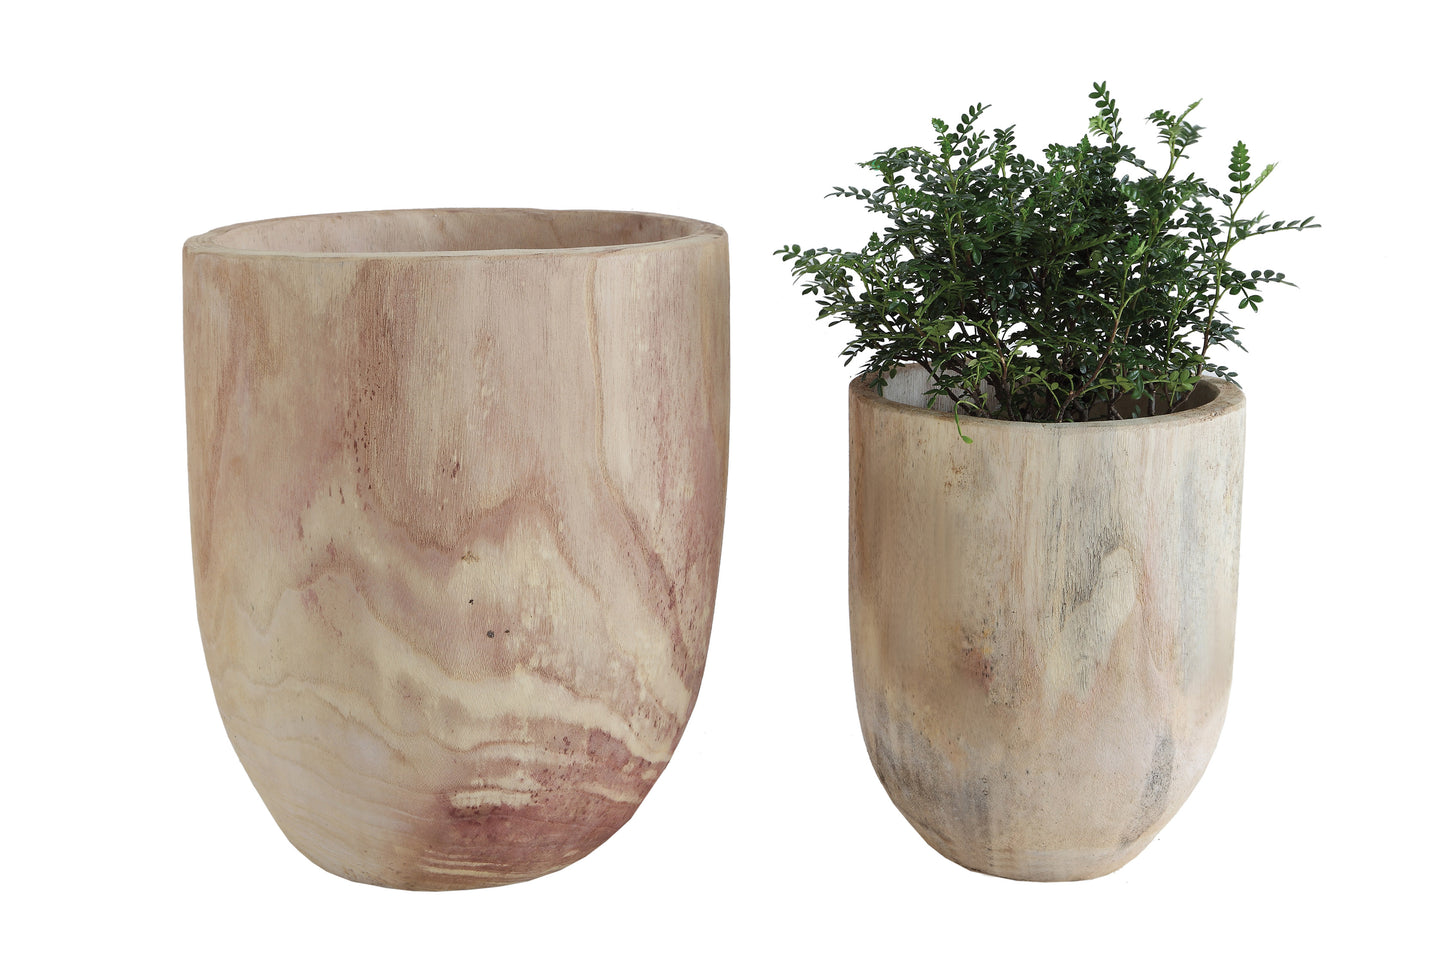 Handmade Wooden Pots - Free Shipping!